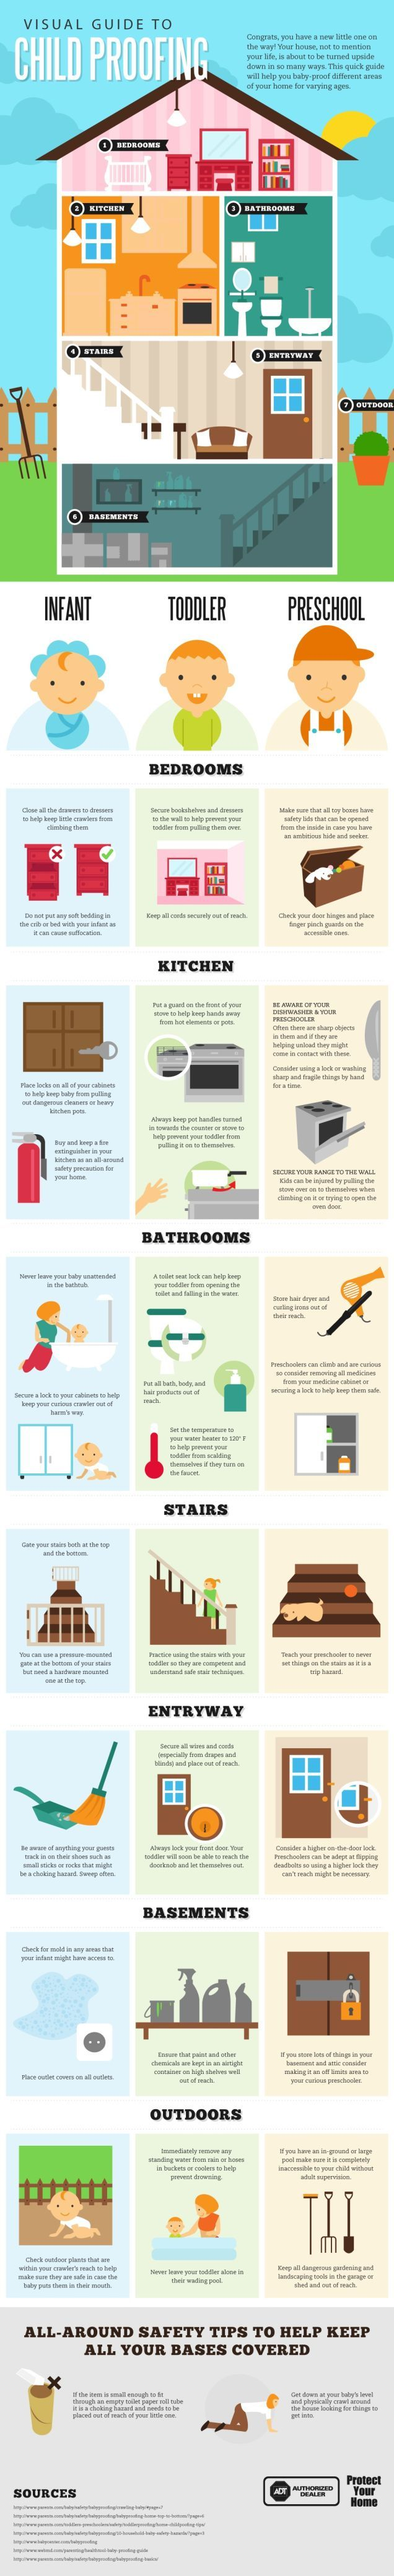 Keep Your Home Child-Safe with This Room-by-Room Infographic